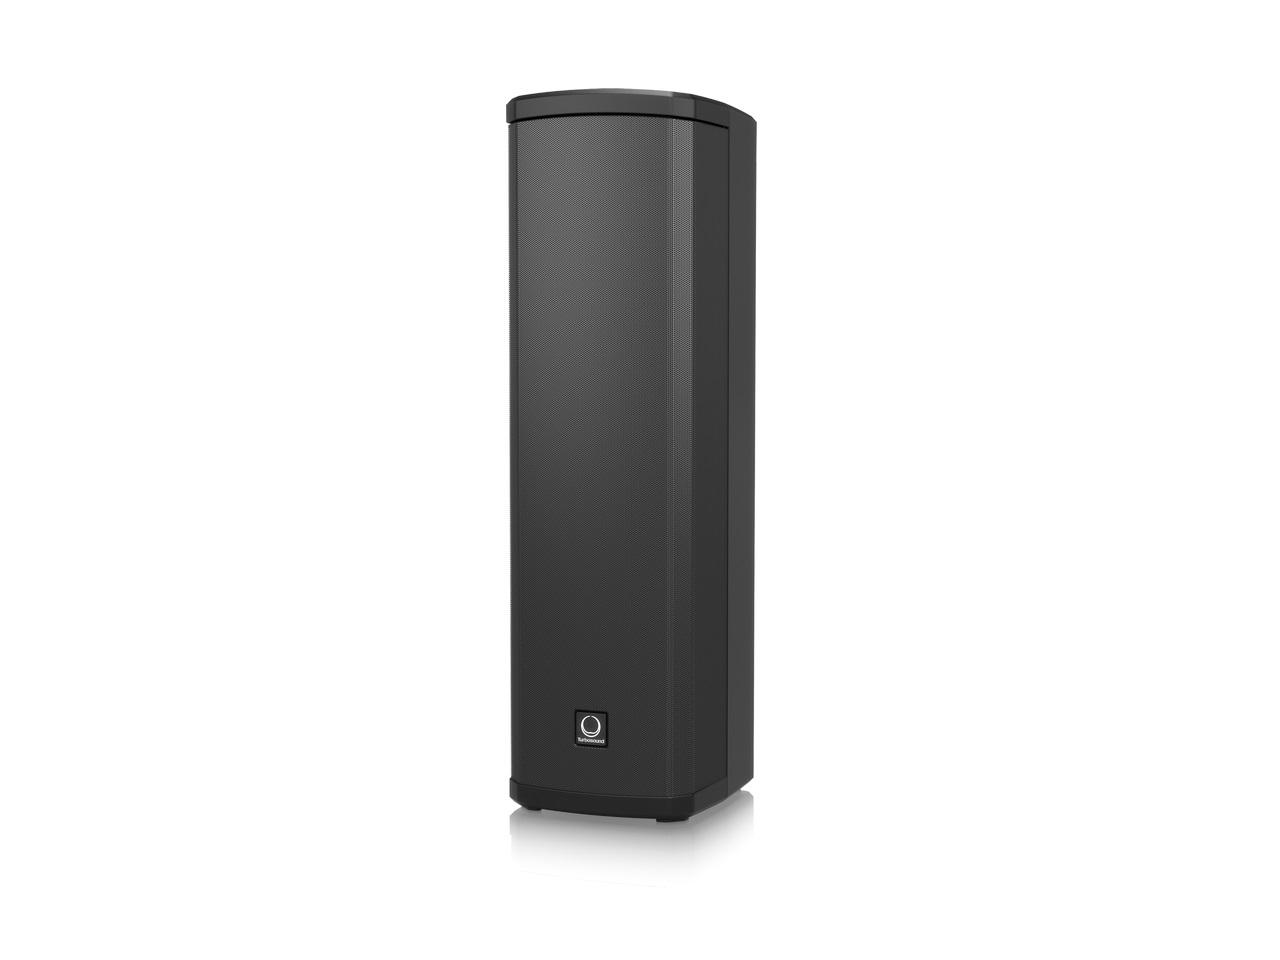 Turbosound iP300 600W Powered Column Loudspeaker with 2x 6.5 inch Woofers